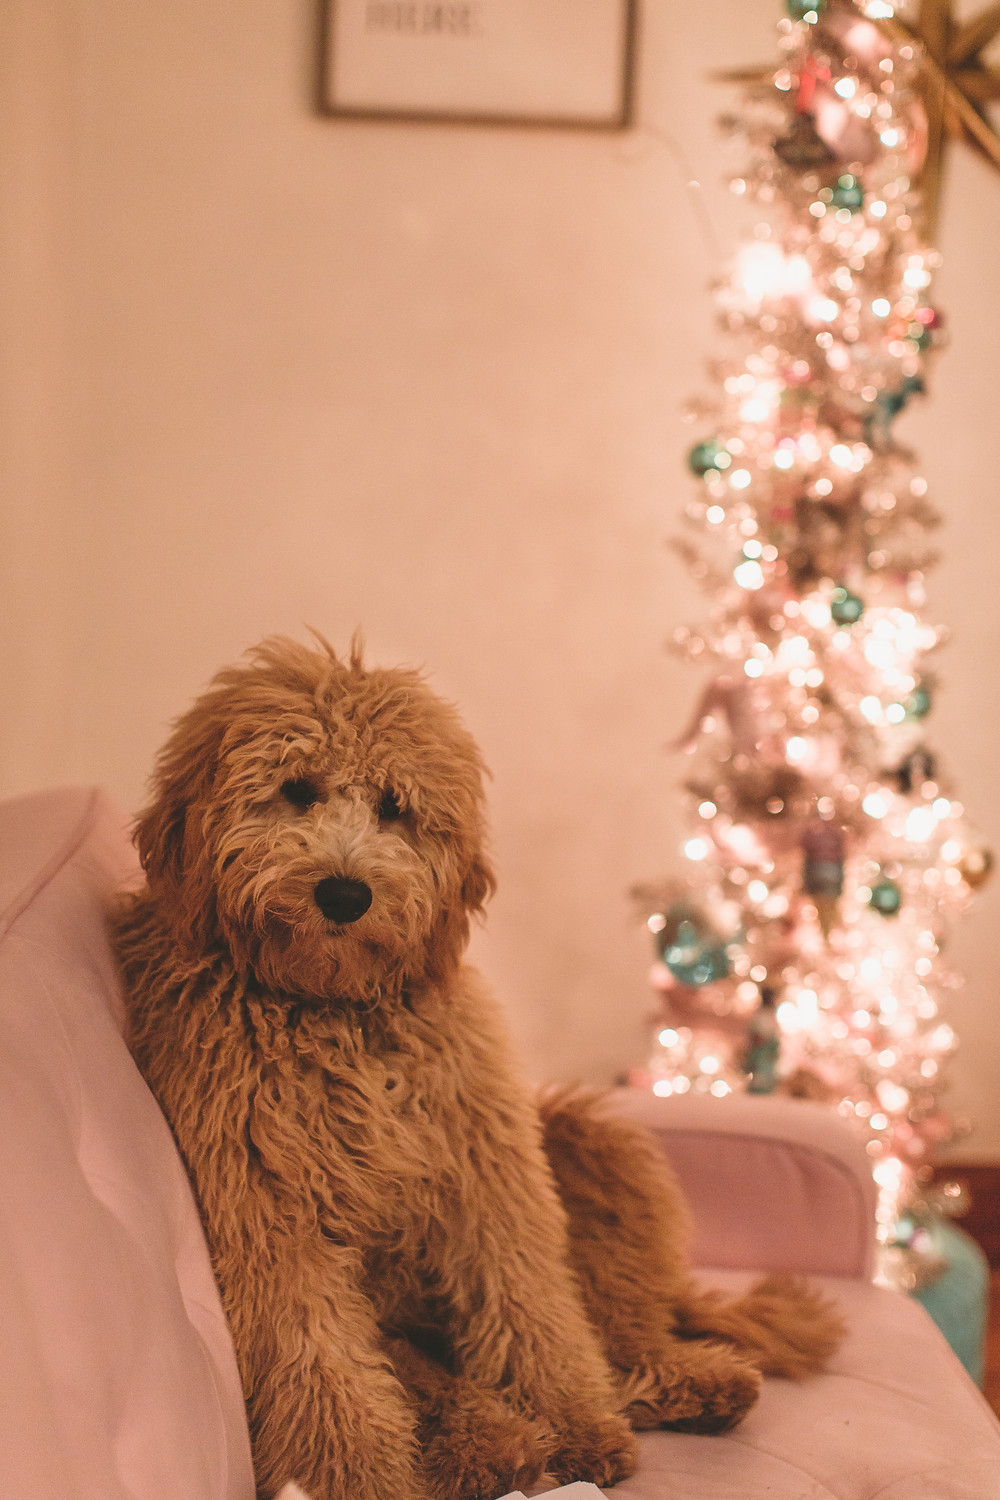 Goldendoodle, maple the goldendoodle